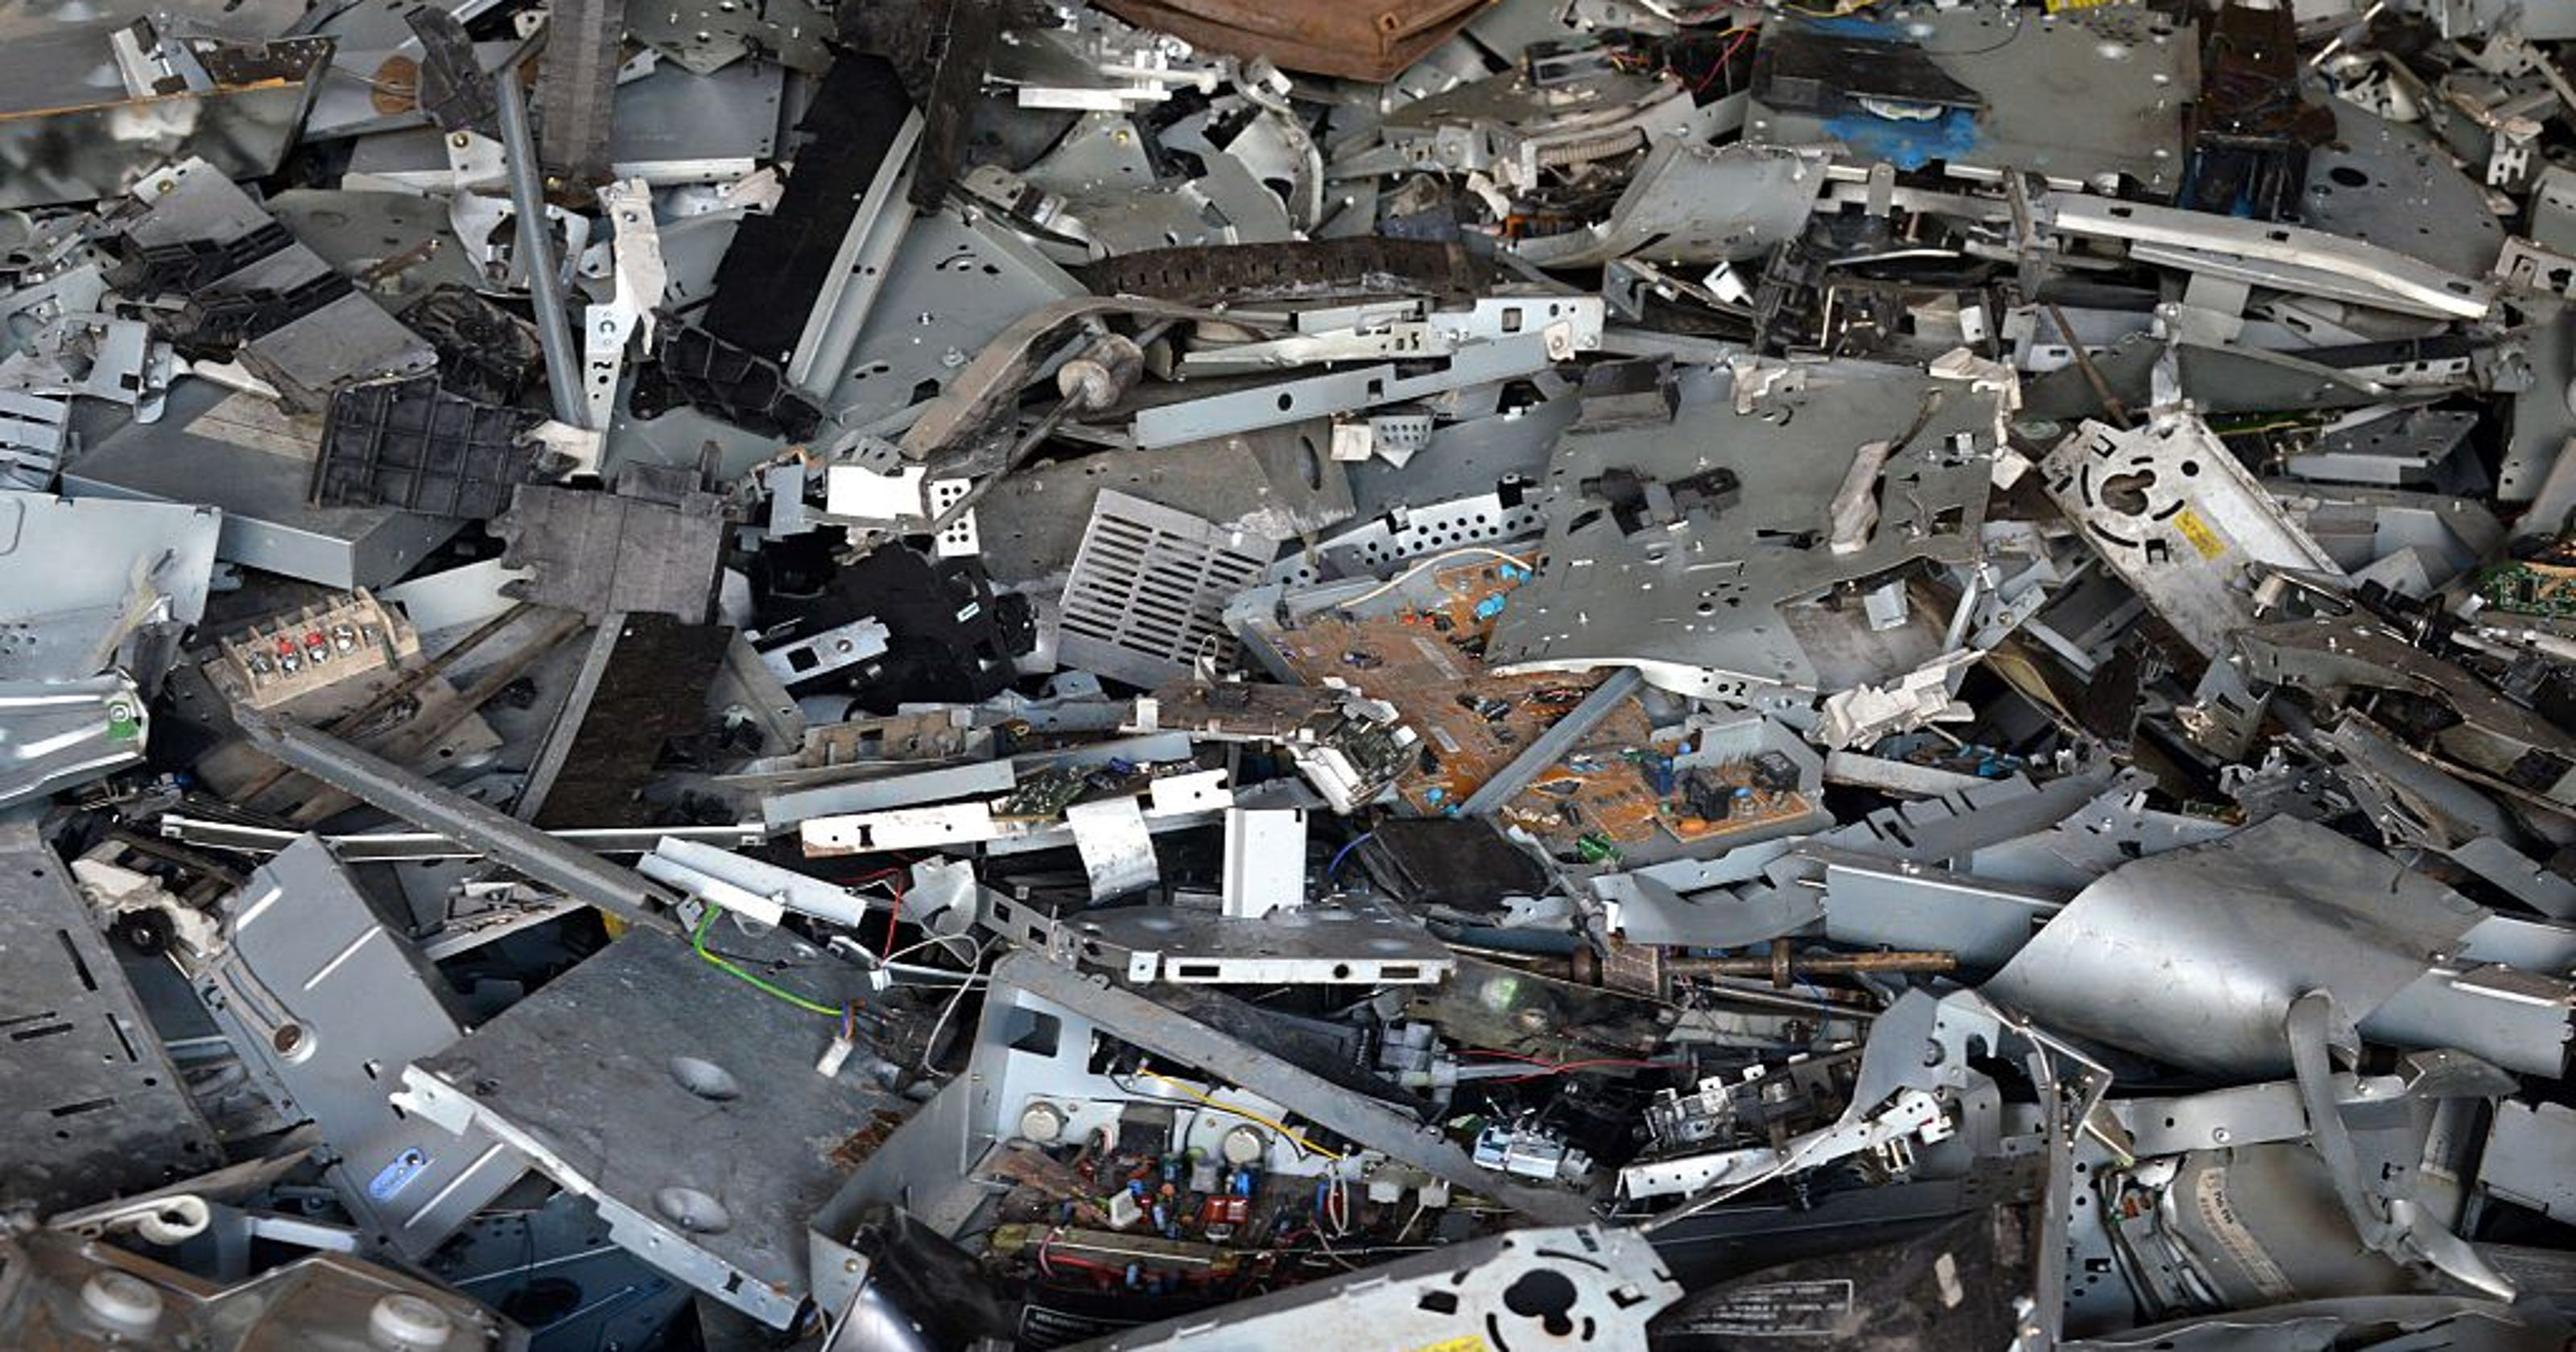 Ken Colburn Where To Dispose Of Old Electronics Scrap Recycling Pictures